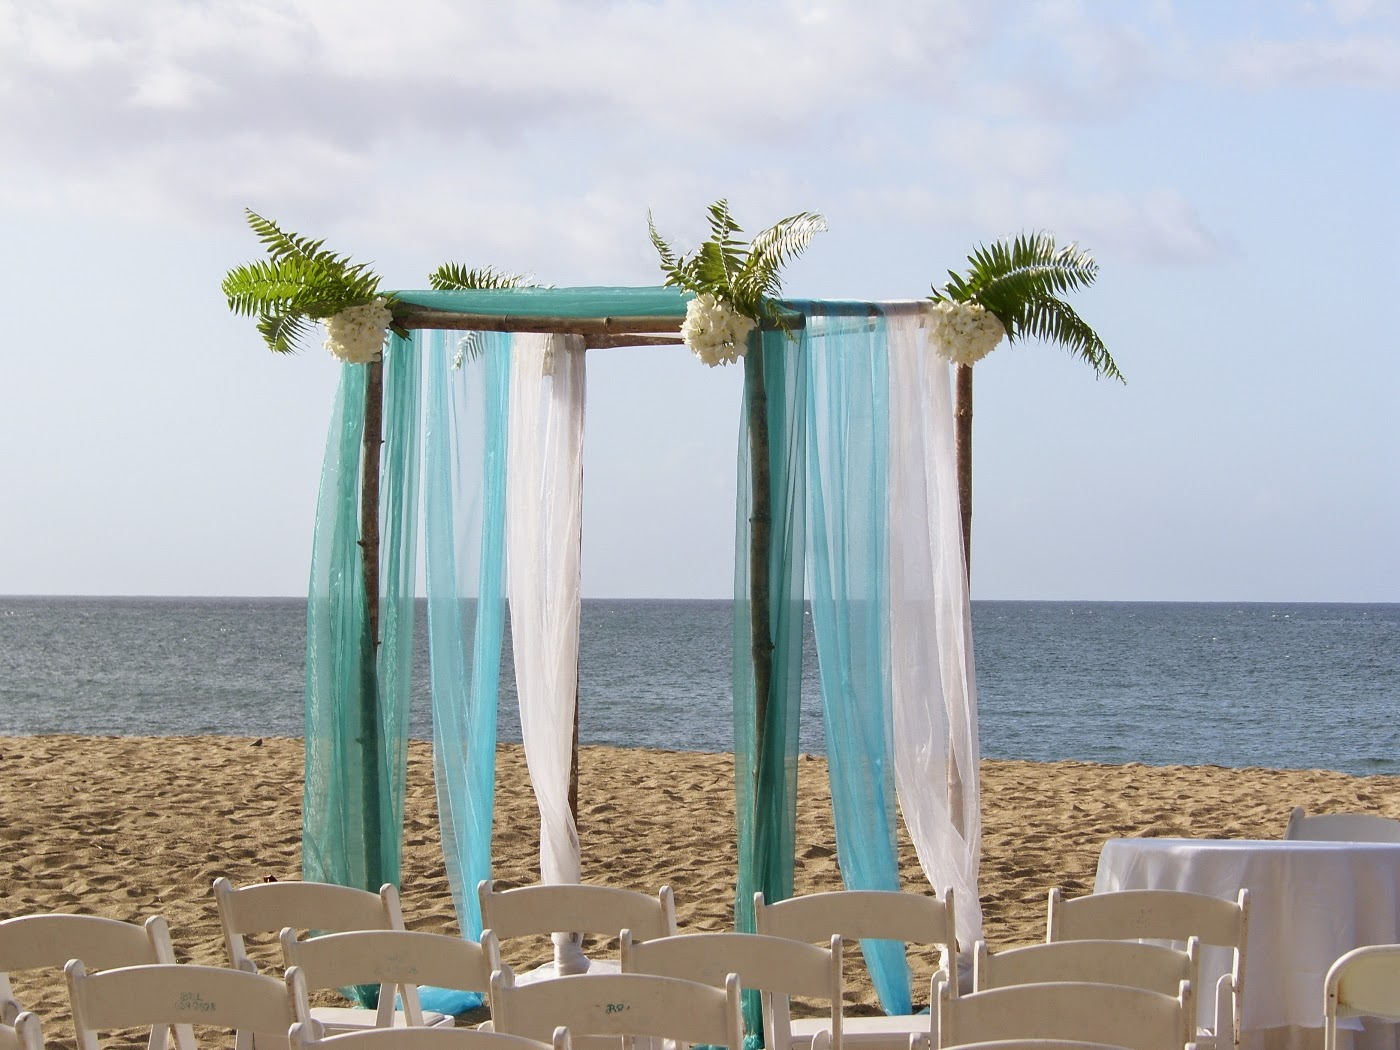 Beach Wedding Arch Ideas: Destination Beach Wedding Ideas